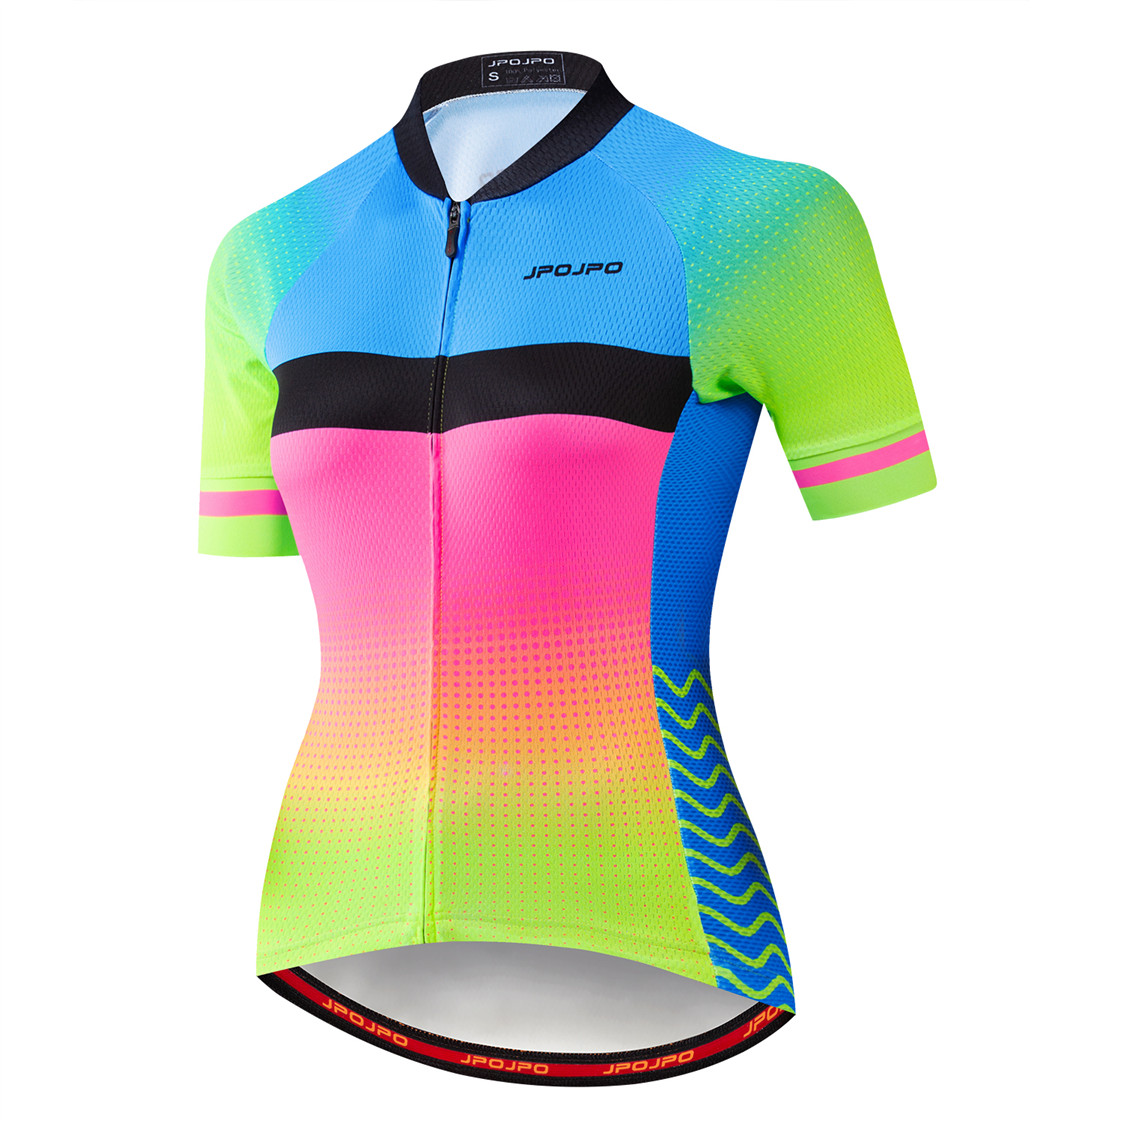 2019 Bike Jersey women cycling jersey road MTB bicycle shirts Ropa Maillot Ciclismo Racing green cycle top red blue summer wear in Cycling Jerseys from Sports Entertainment